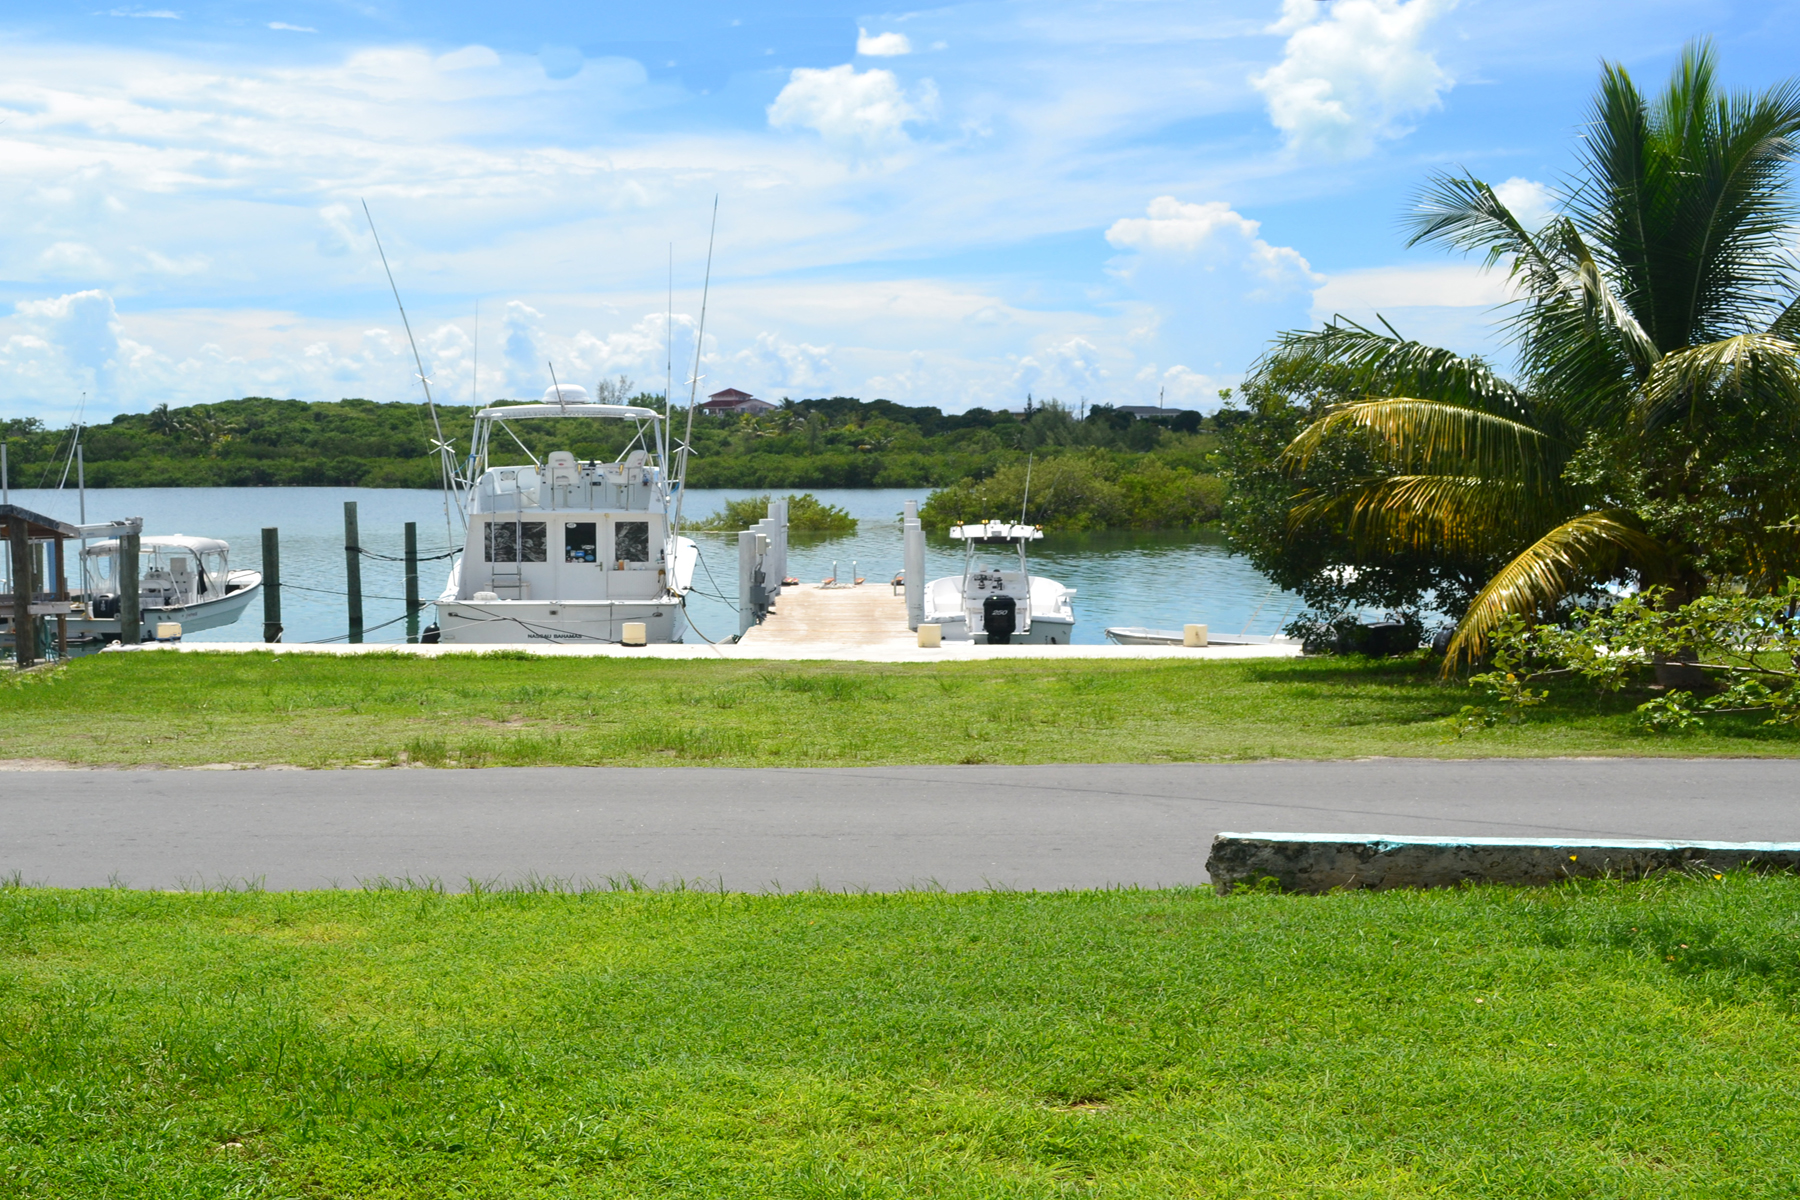 Land for Sale at Harbourside Dock Property with Vacant Lot Spanish Wells, Eleuthera Bahamas